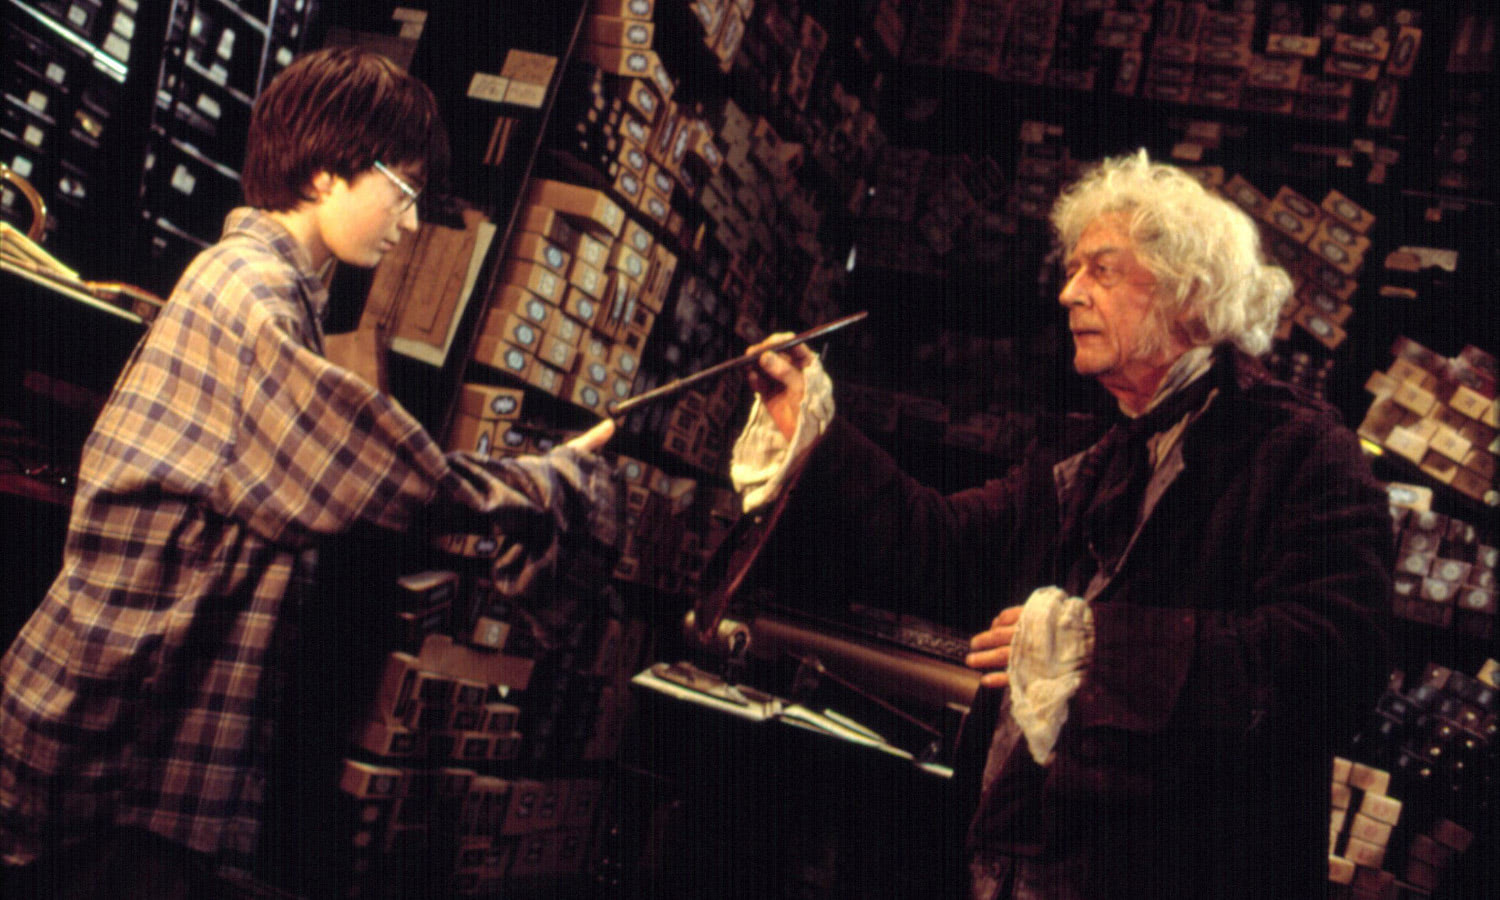 Harry receives his wand